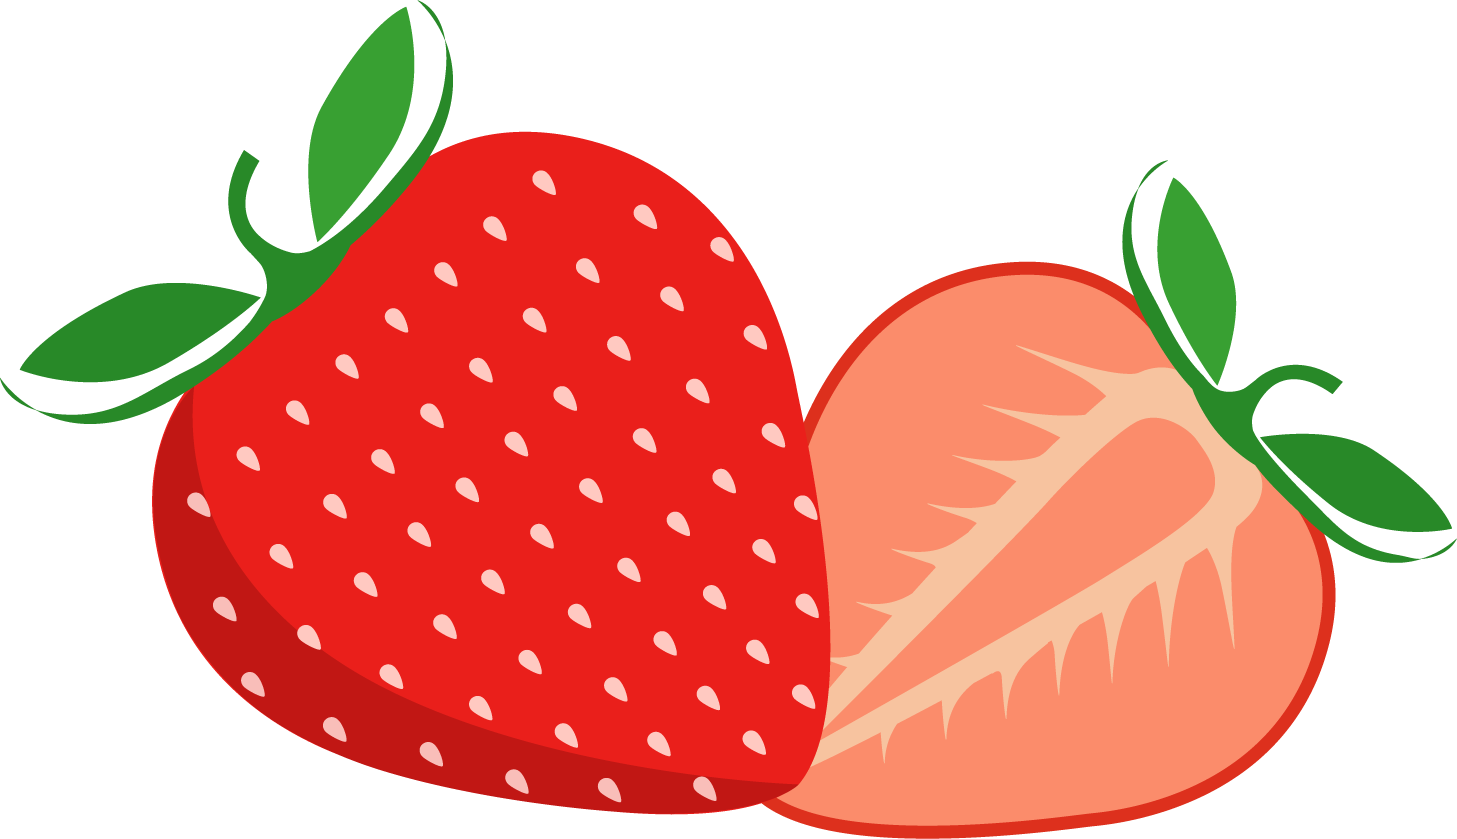 Strawberries clipart draw. Strawberry png transparent free